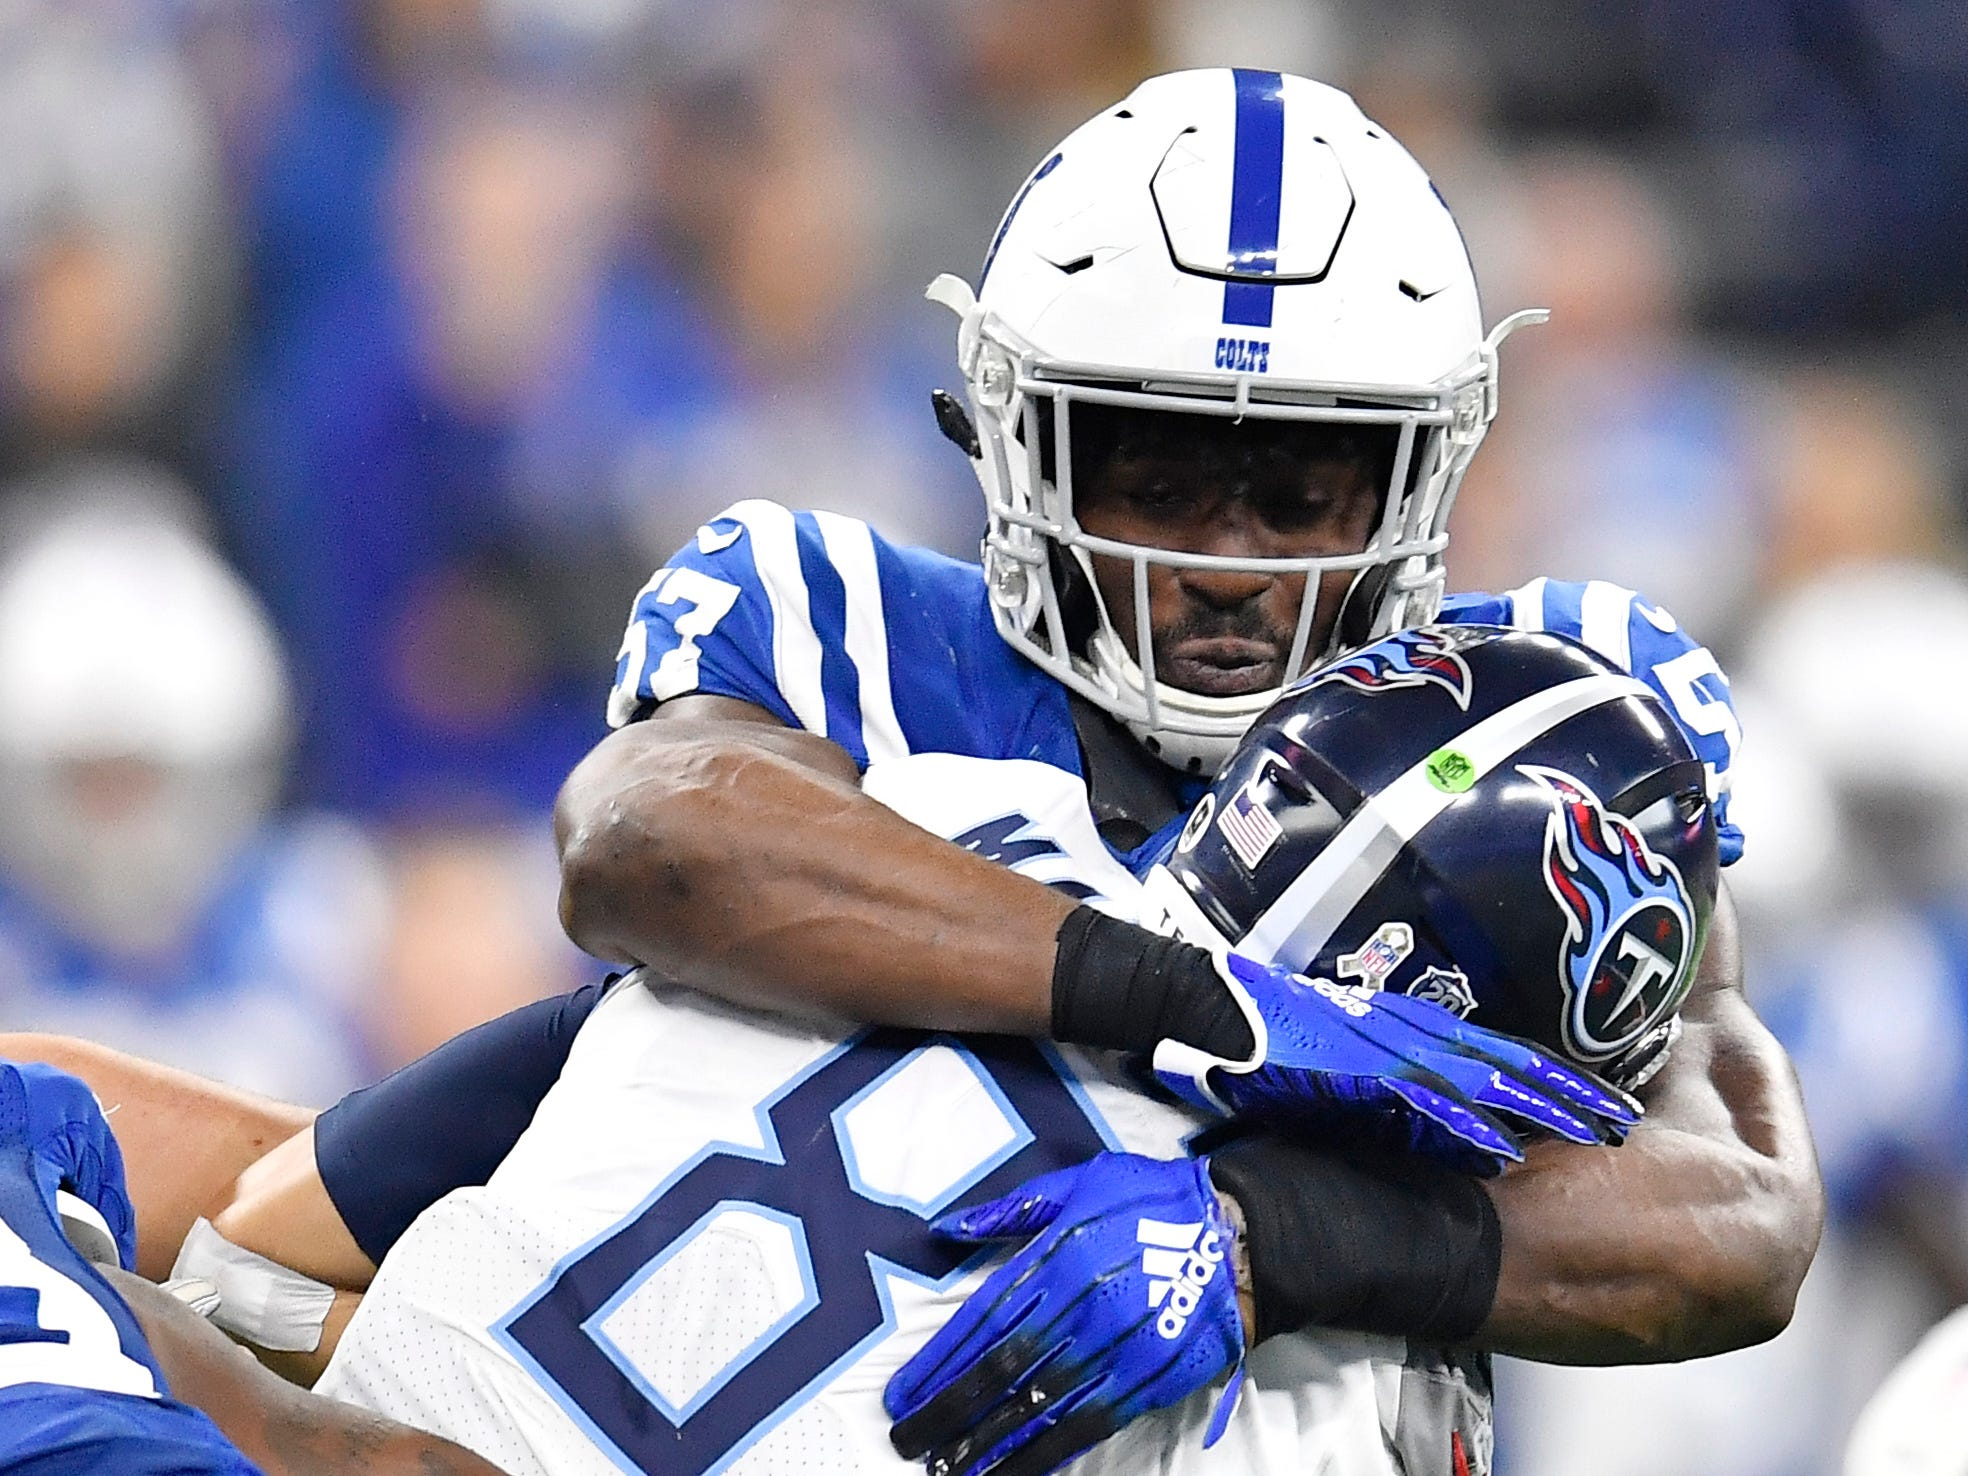 Nov. 18: Colts 38, Titans 10 -- Titans quarterback Marcus Mariota (8) is sacked by Colts outside linebacker Darius Leonard (53) in the second quarter at Lucas Oil Stadium Sunday, Nov. 18, 2018, in Indianapolis, Ind.